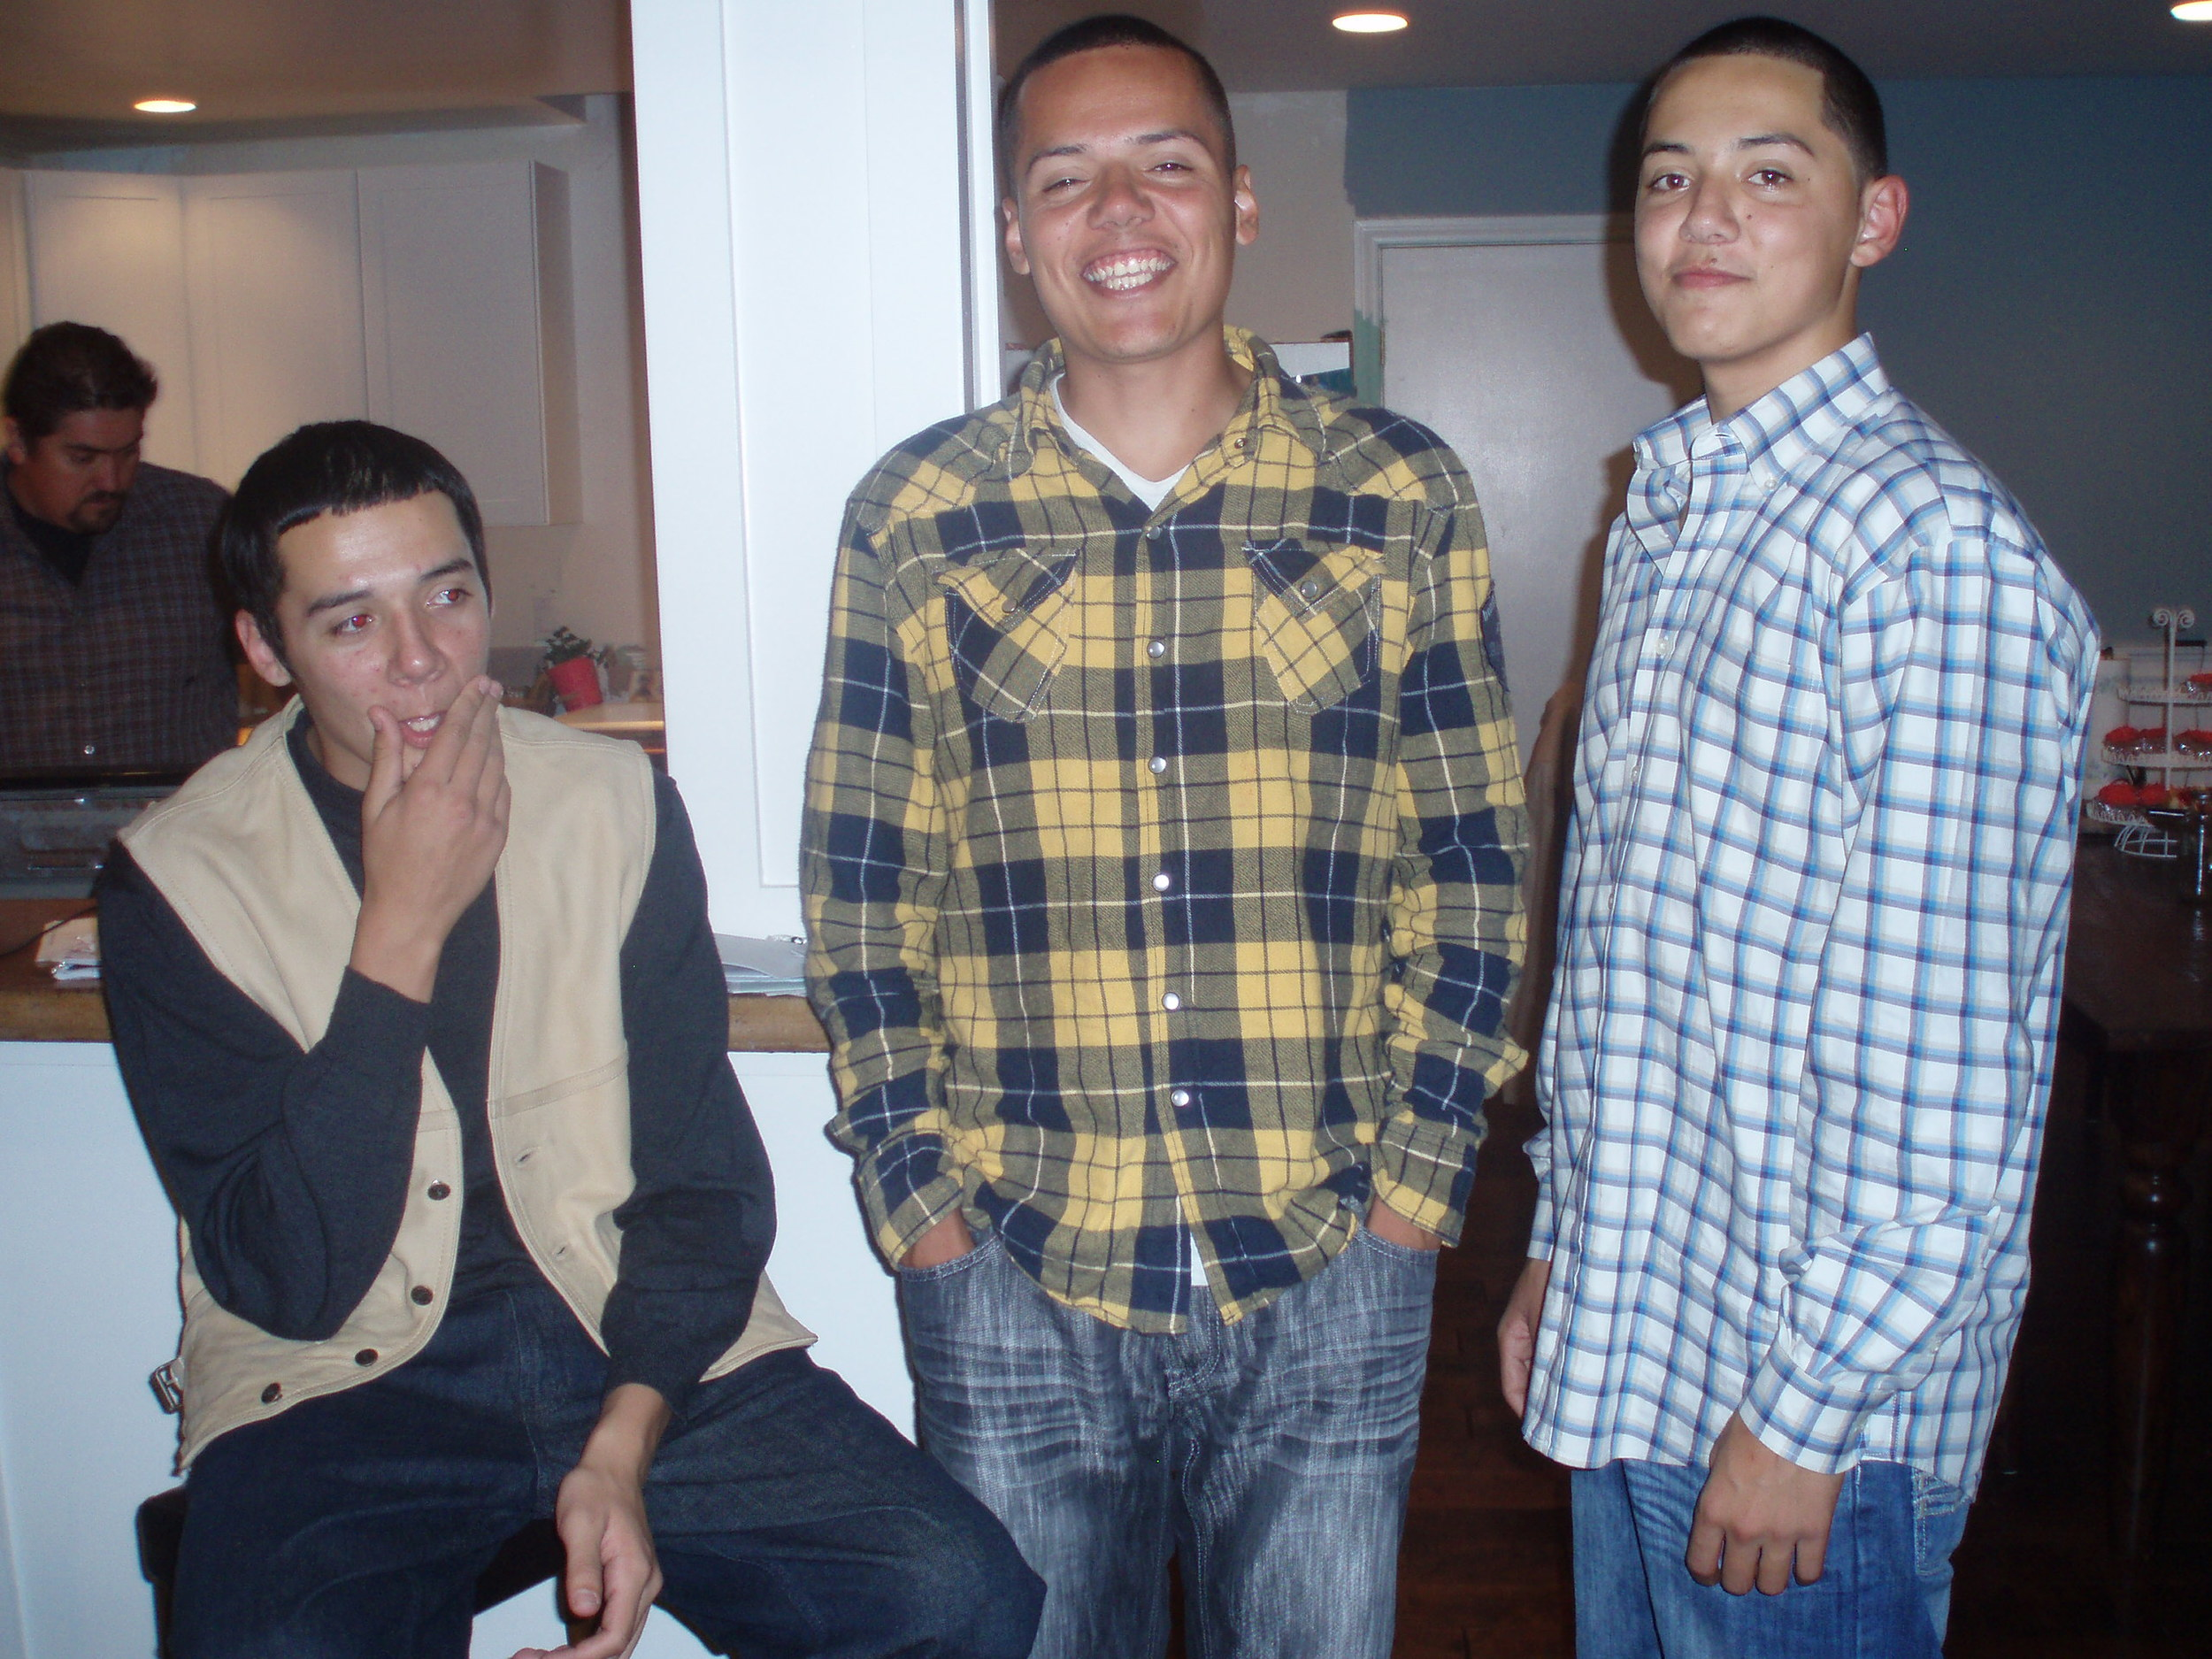 My brothers Manuel & Jesus w/ myself in the middle